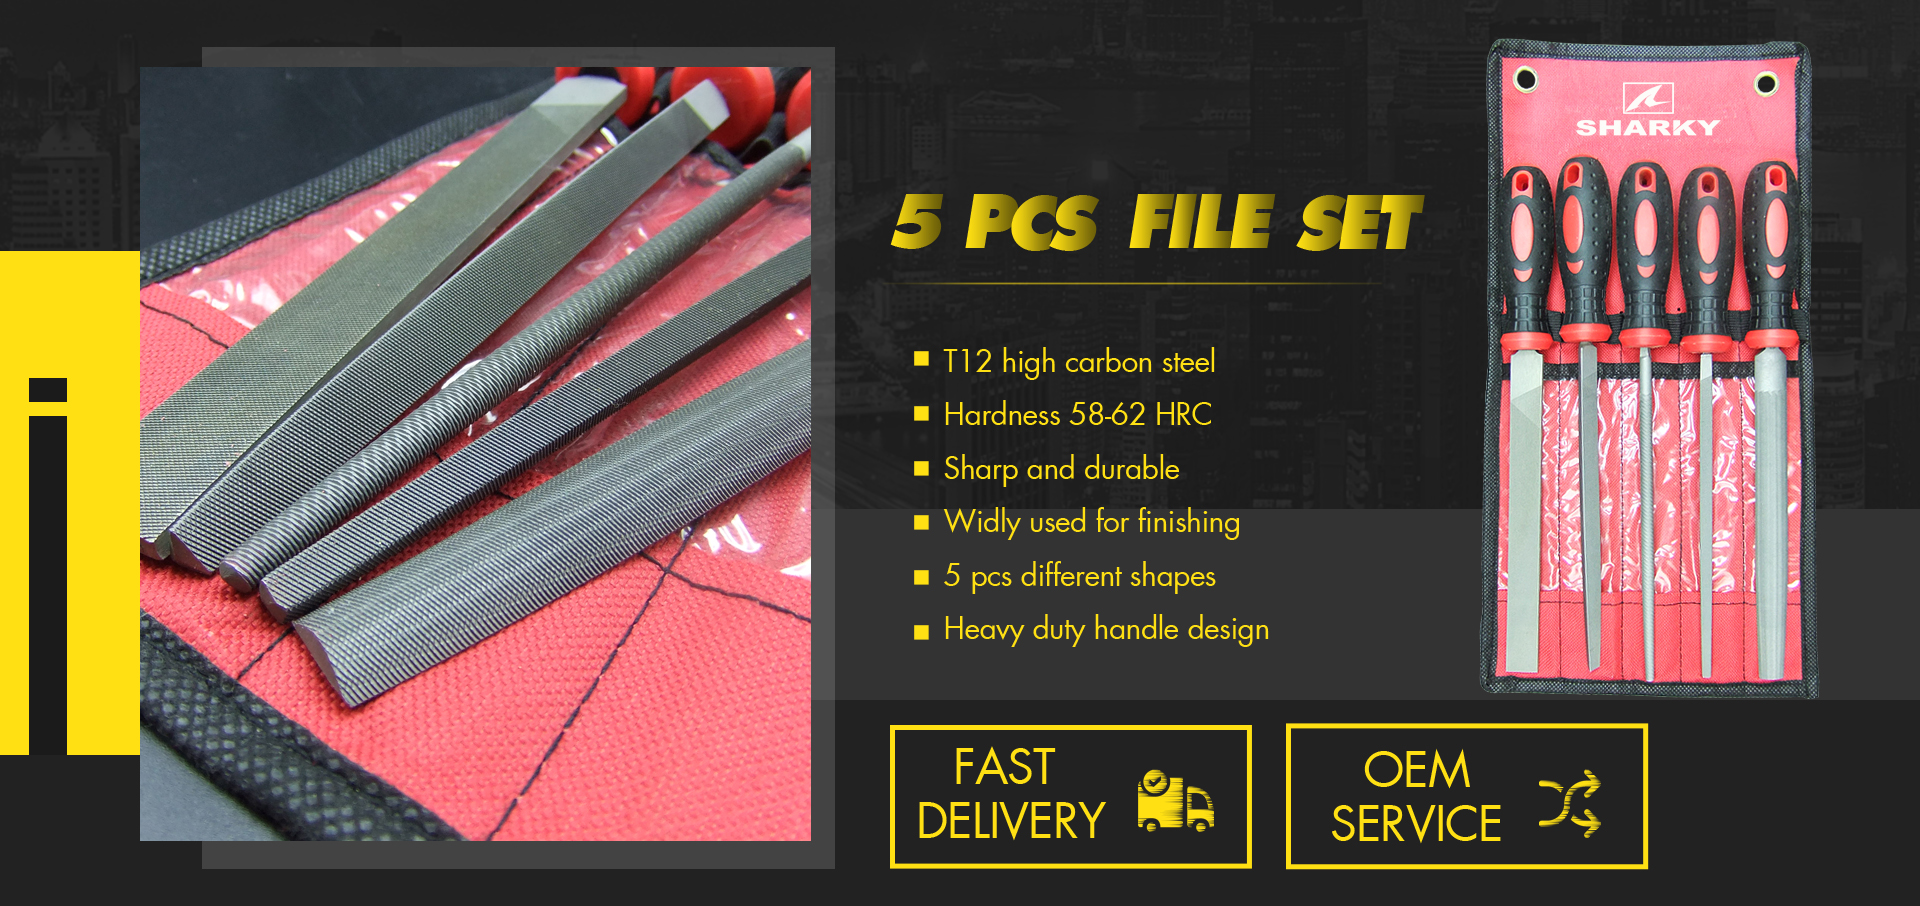 5 pcs engineer's file set